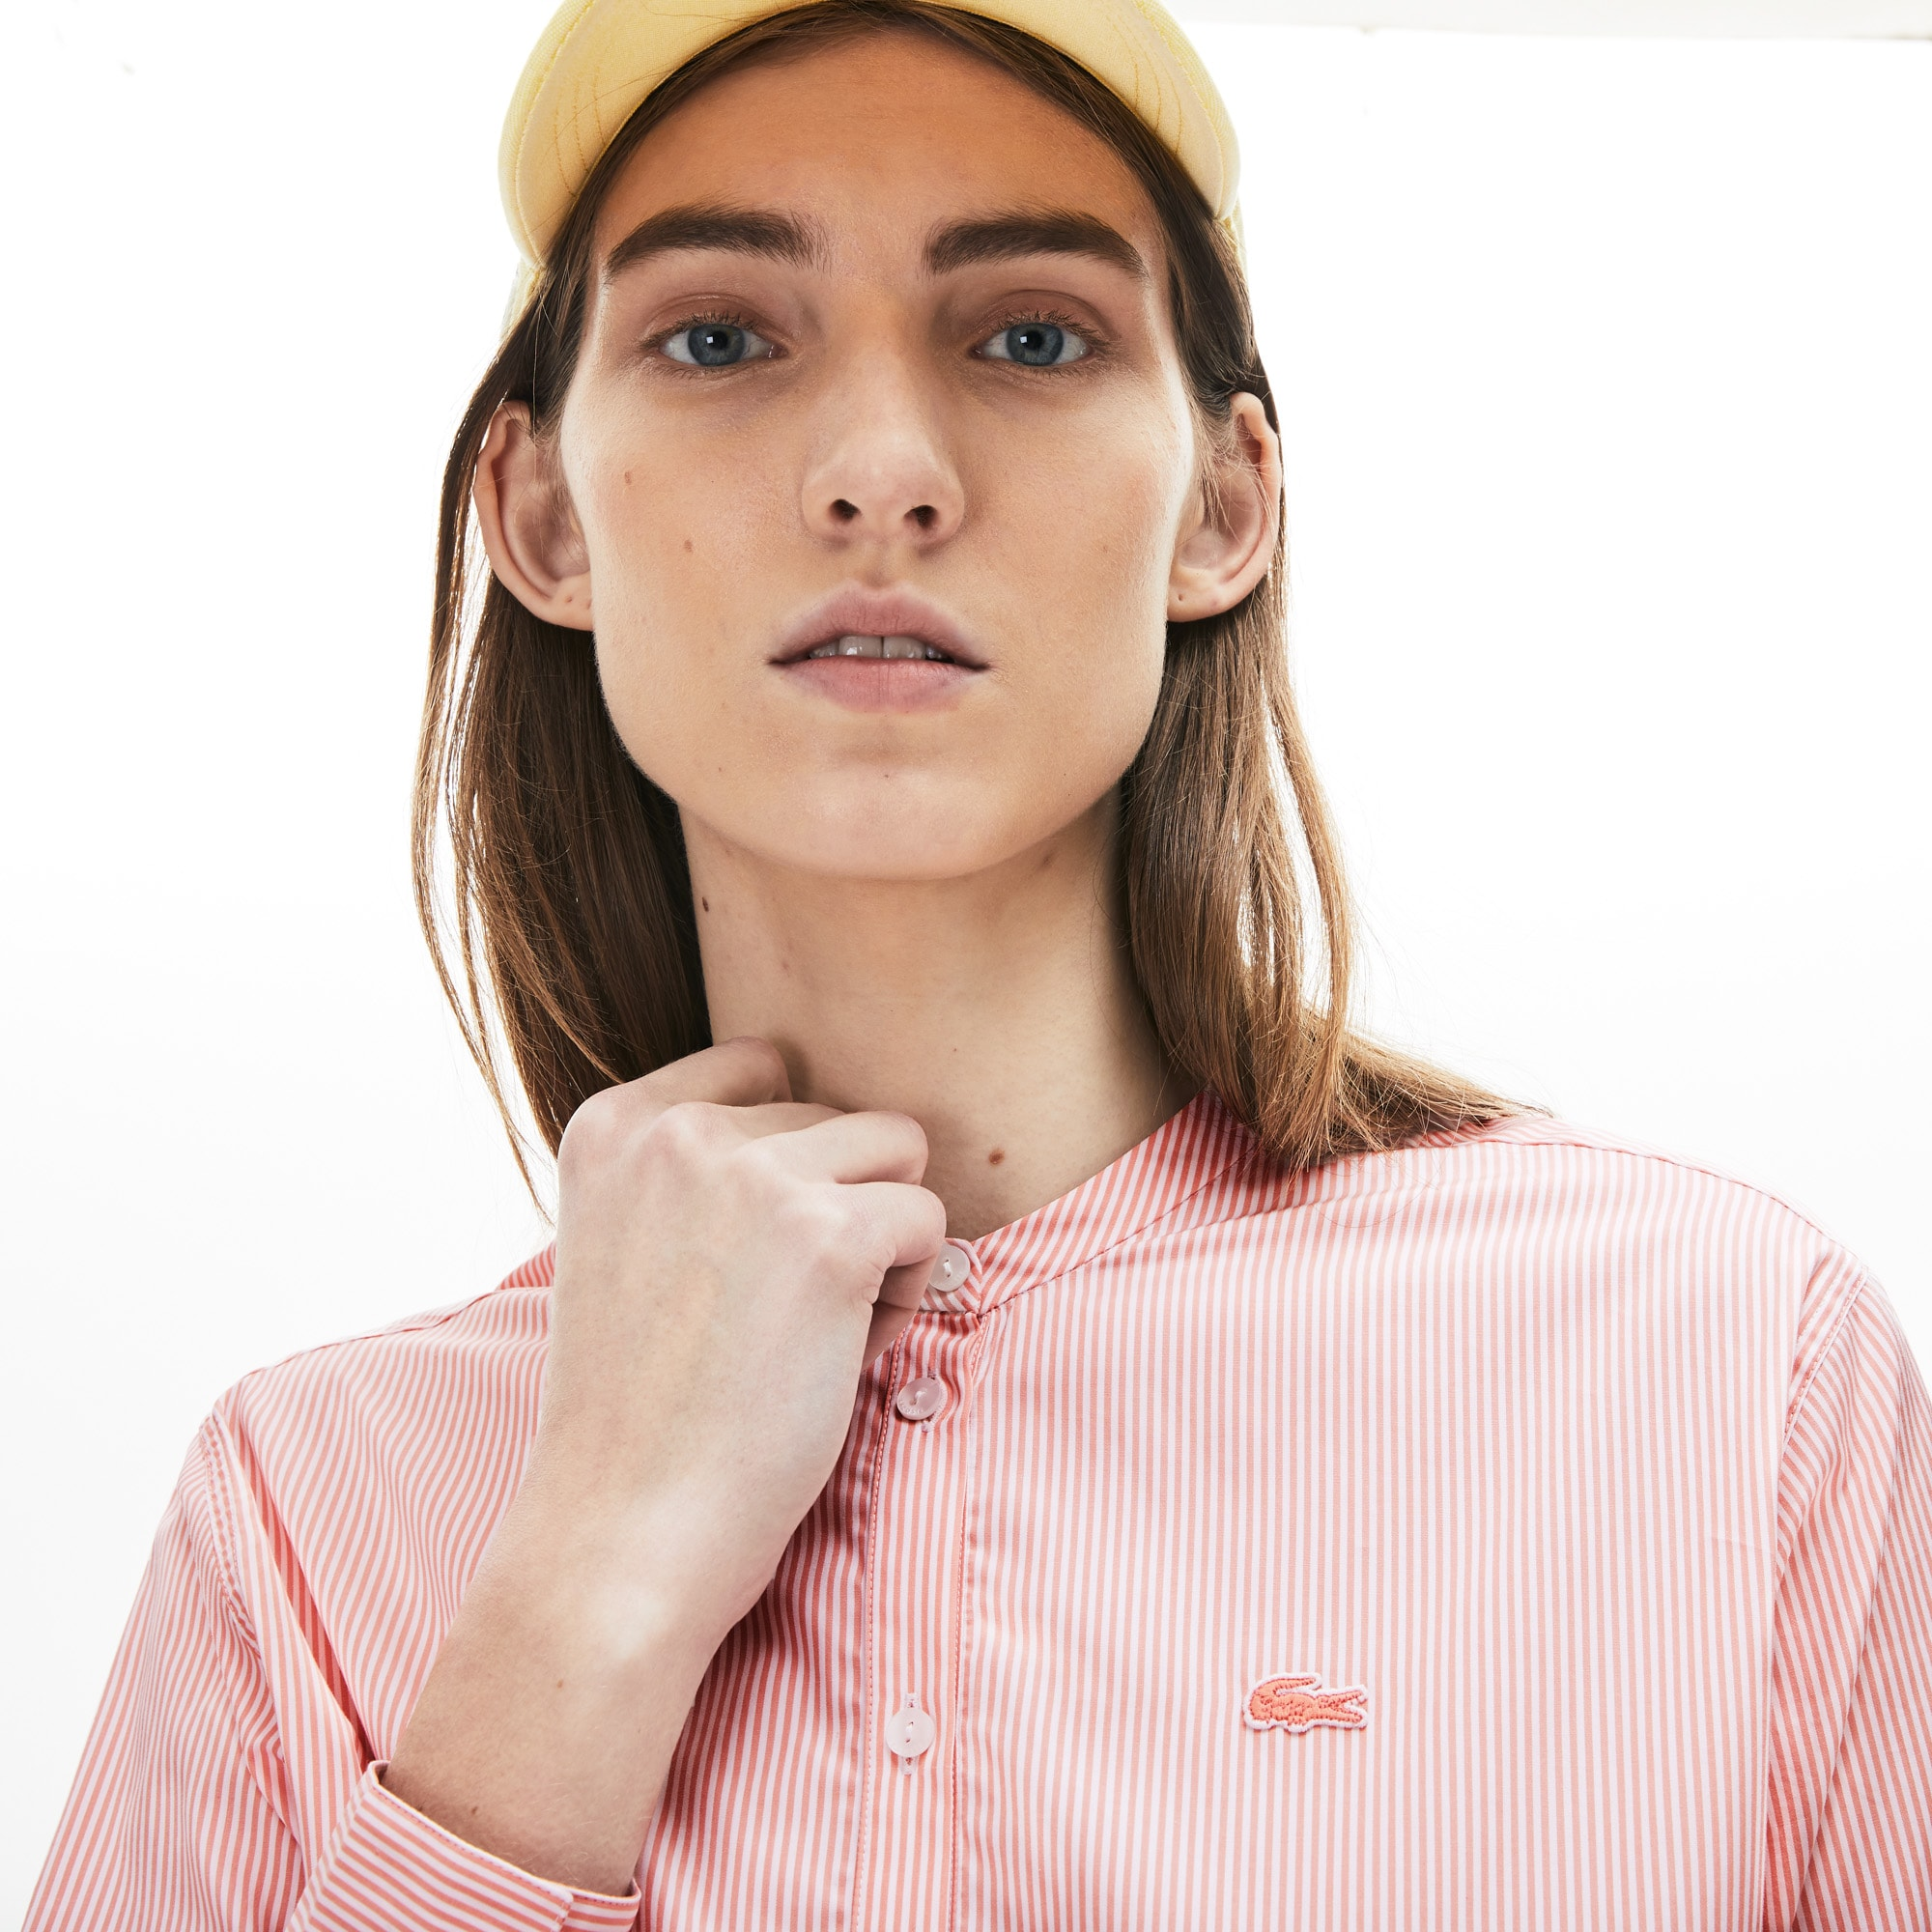 Women's Loose Fit Cotton Poplin Shirt